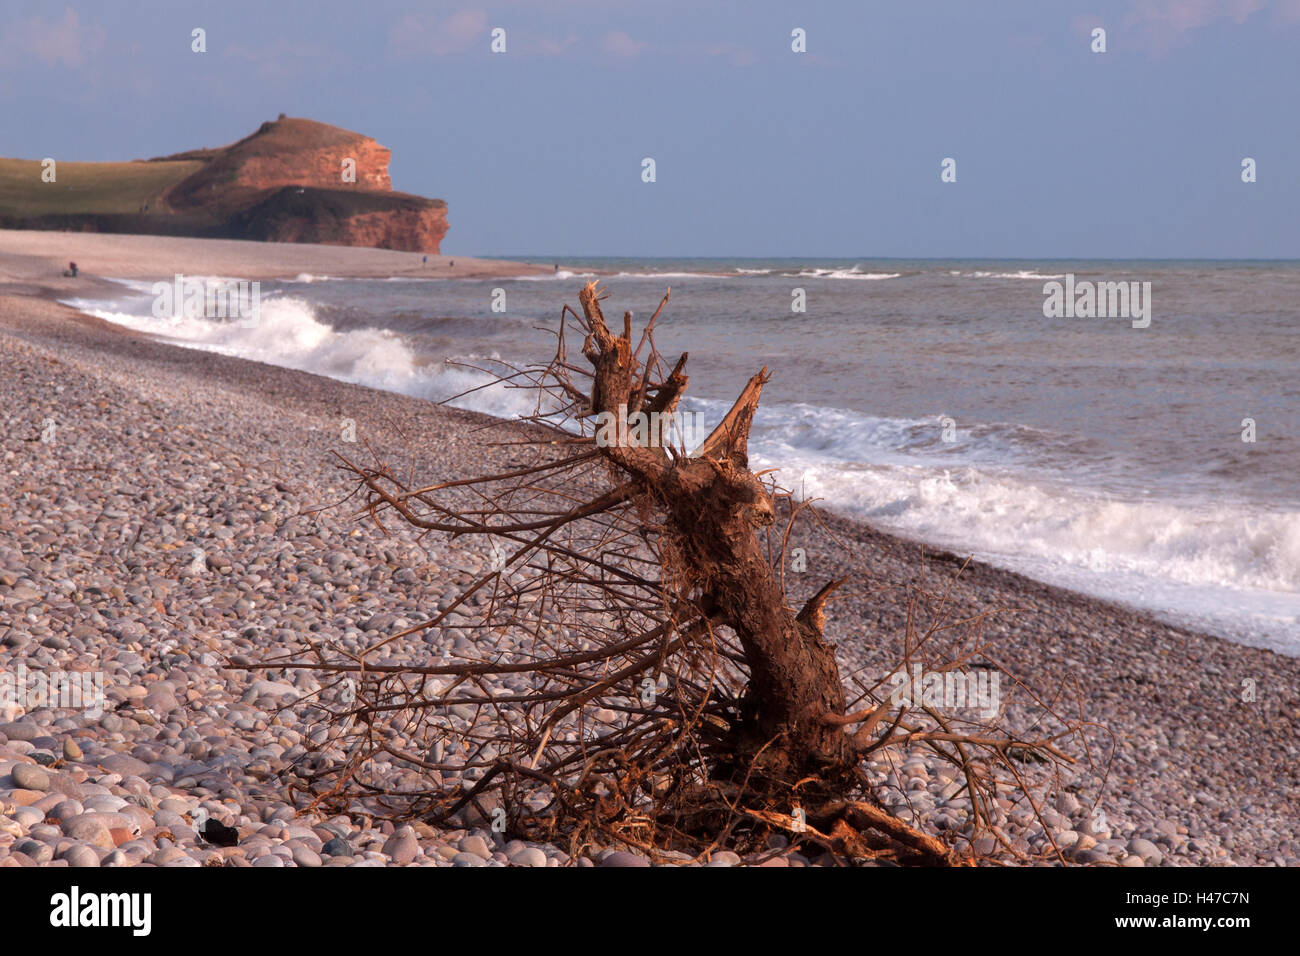 A large piece of driftwood on a pebble beach, at Budleigh Salterton, Devon - Stock Image